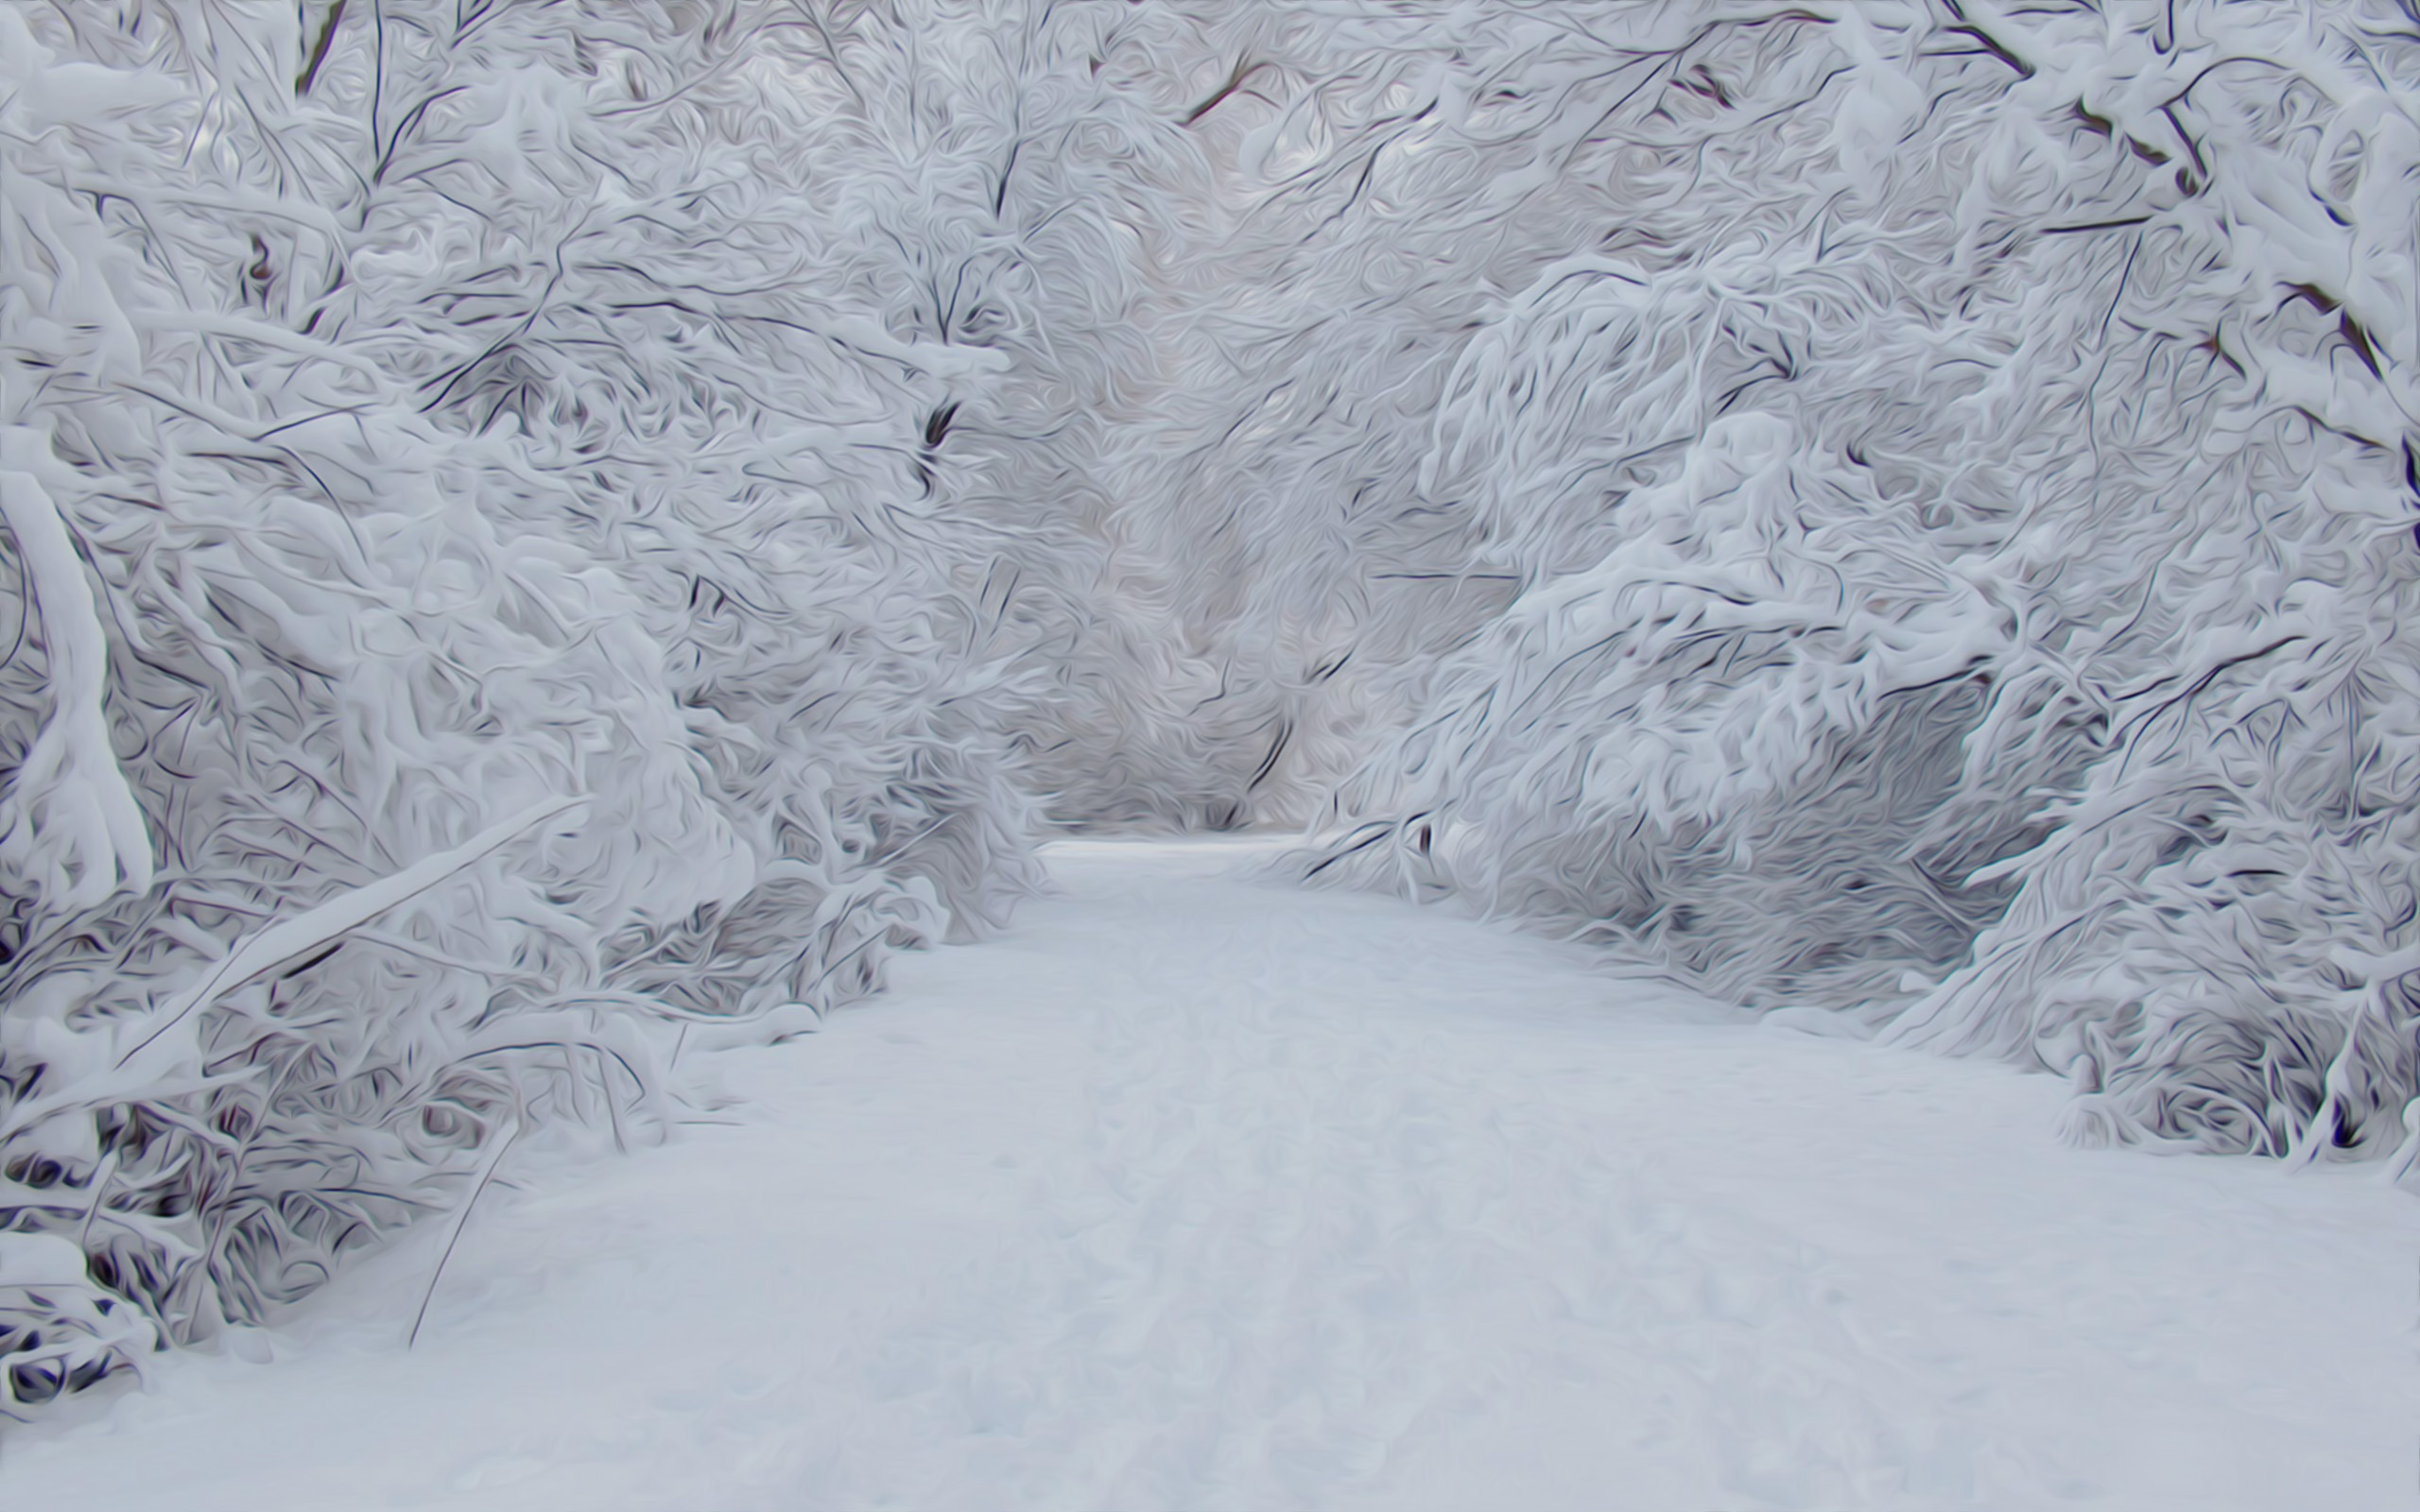 Winter Nature Snow Scene Free Desktop Wallpapers For